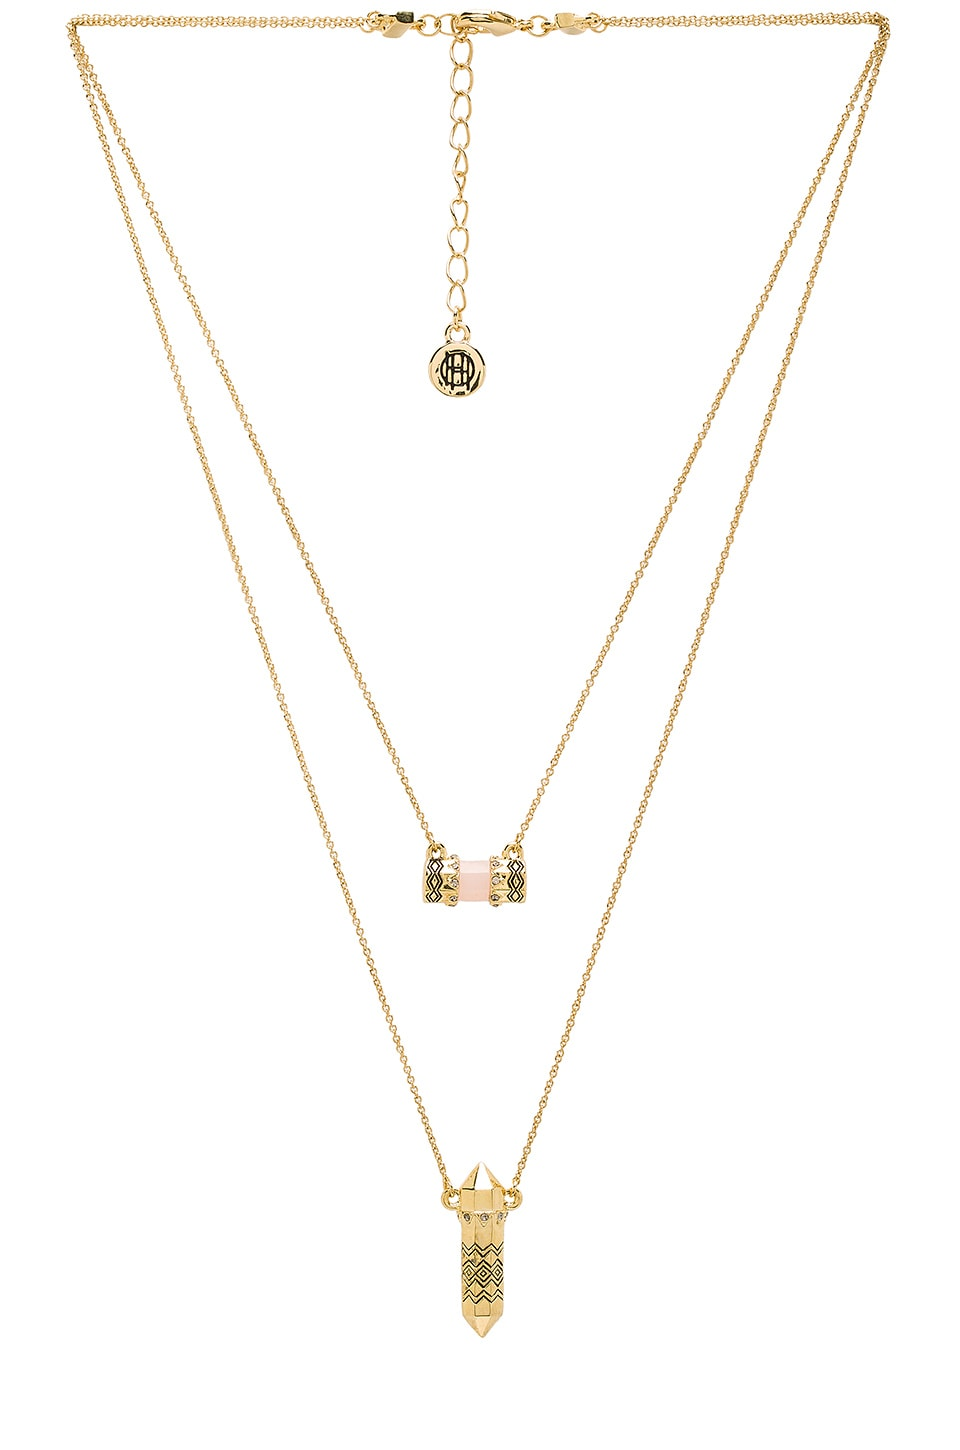 House of harlow 1960 house of harlow prana double pendant necklace house of harlow 1960 house of harlow prana double pendant necklace in gold rose quartz mozeypictures Image collections